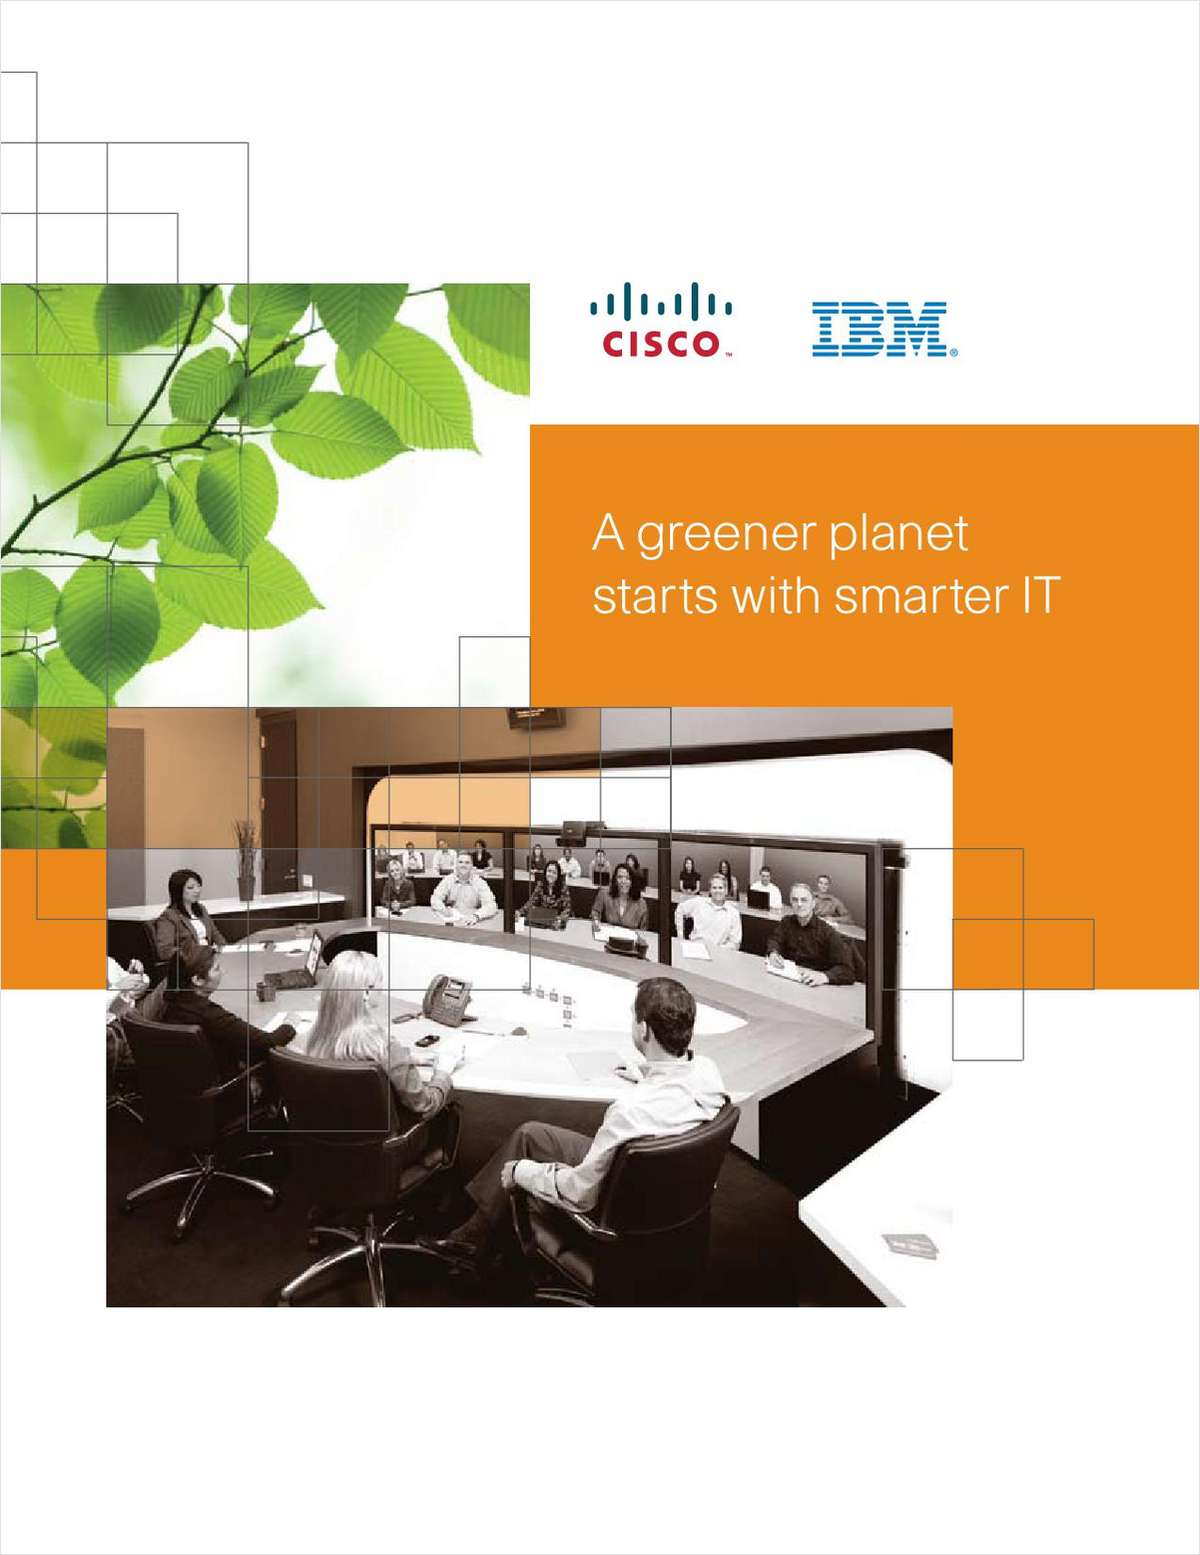 A Greener Planet Starts with Smarter IT